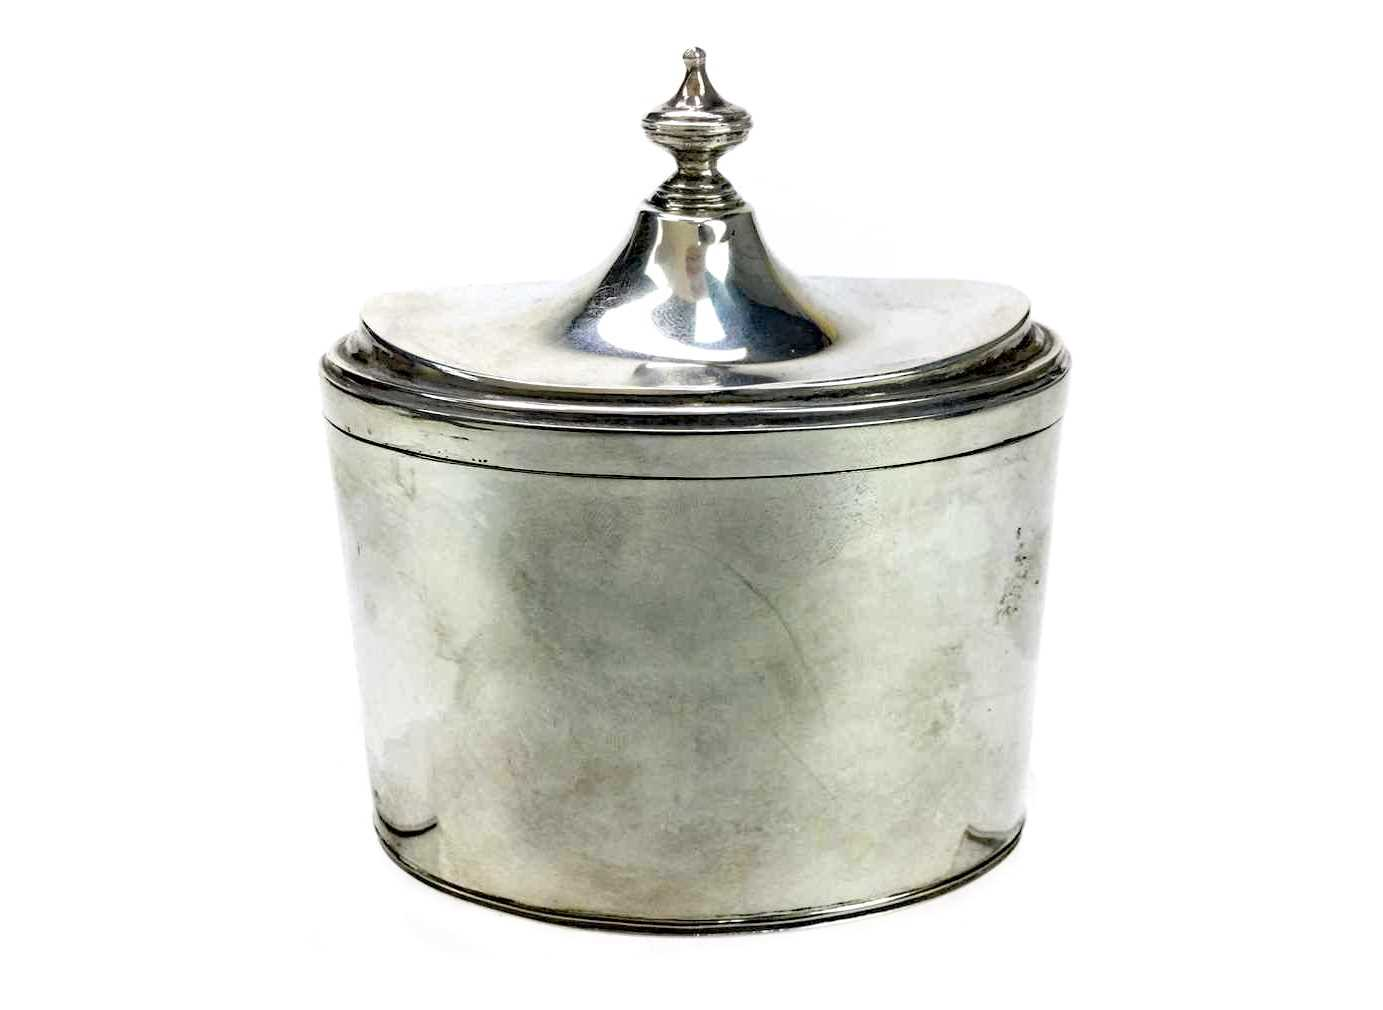 Lot 891 - AN EARLY 20TH CENTURY SILVER TEA CADDY AND COVER